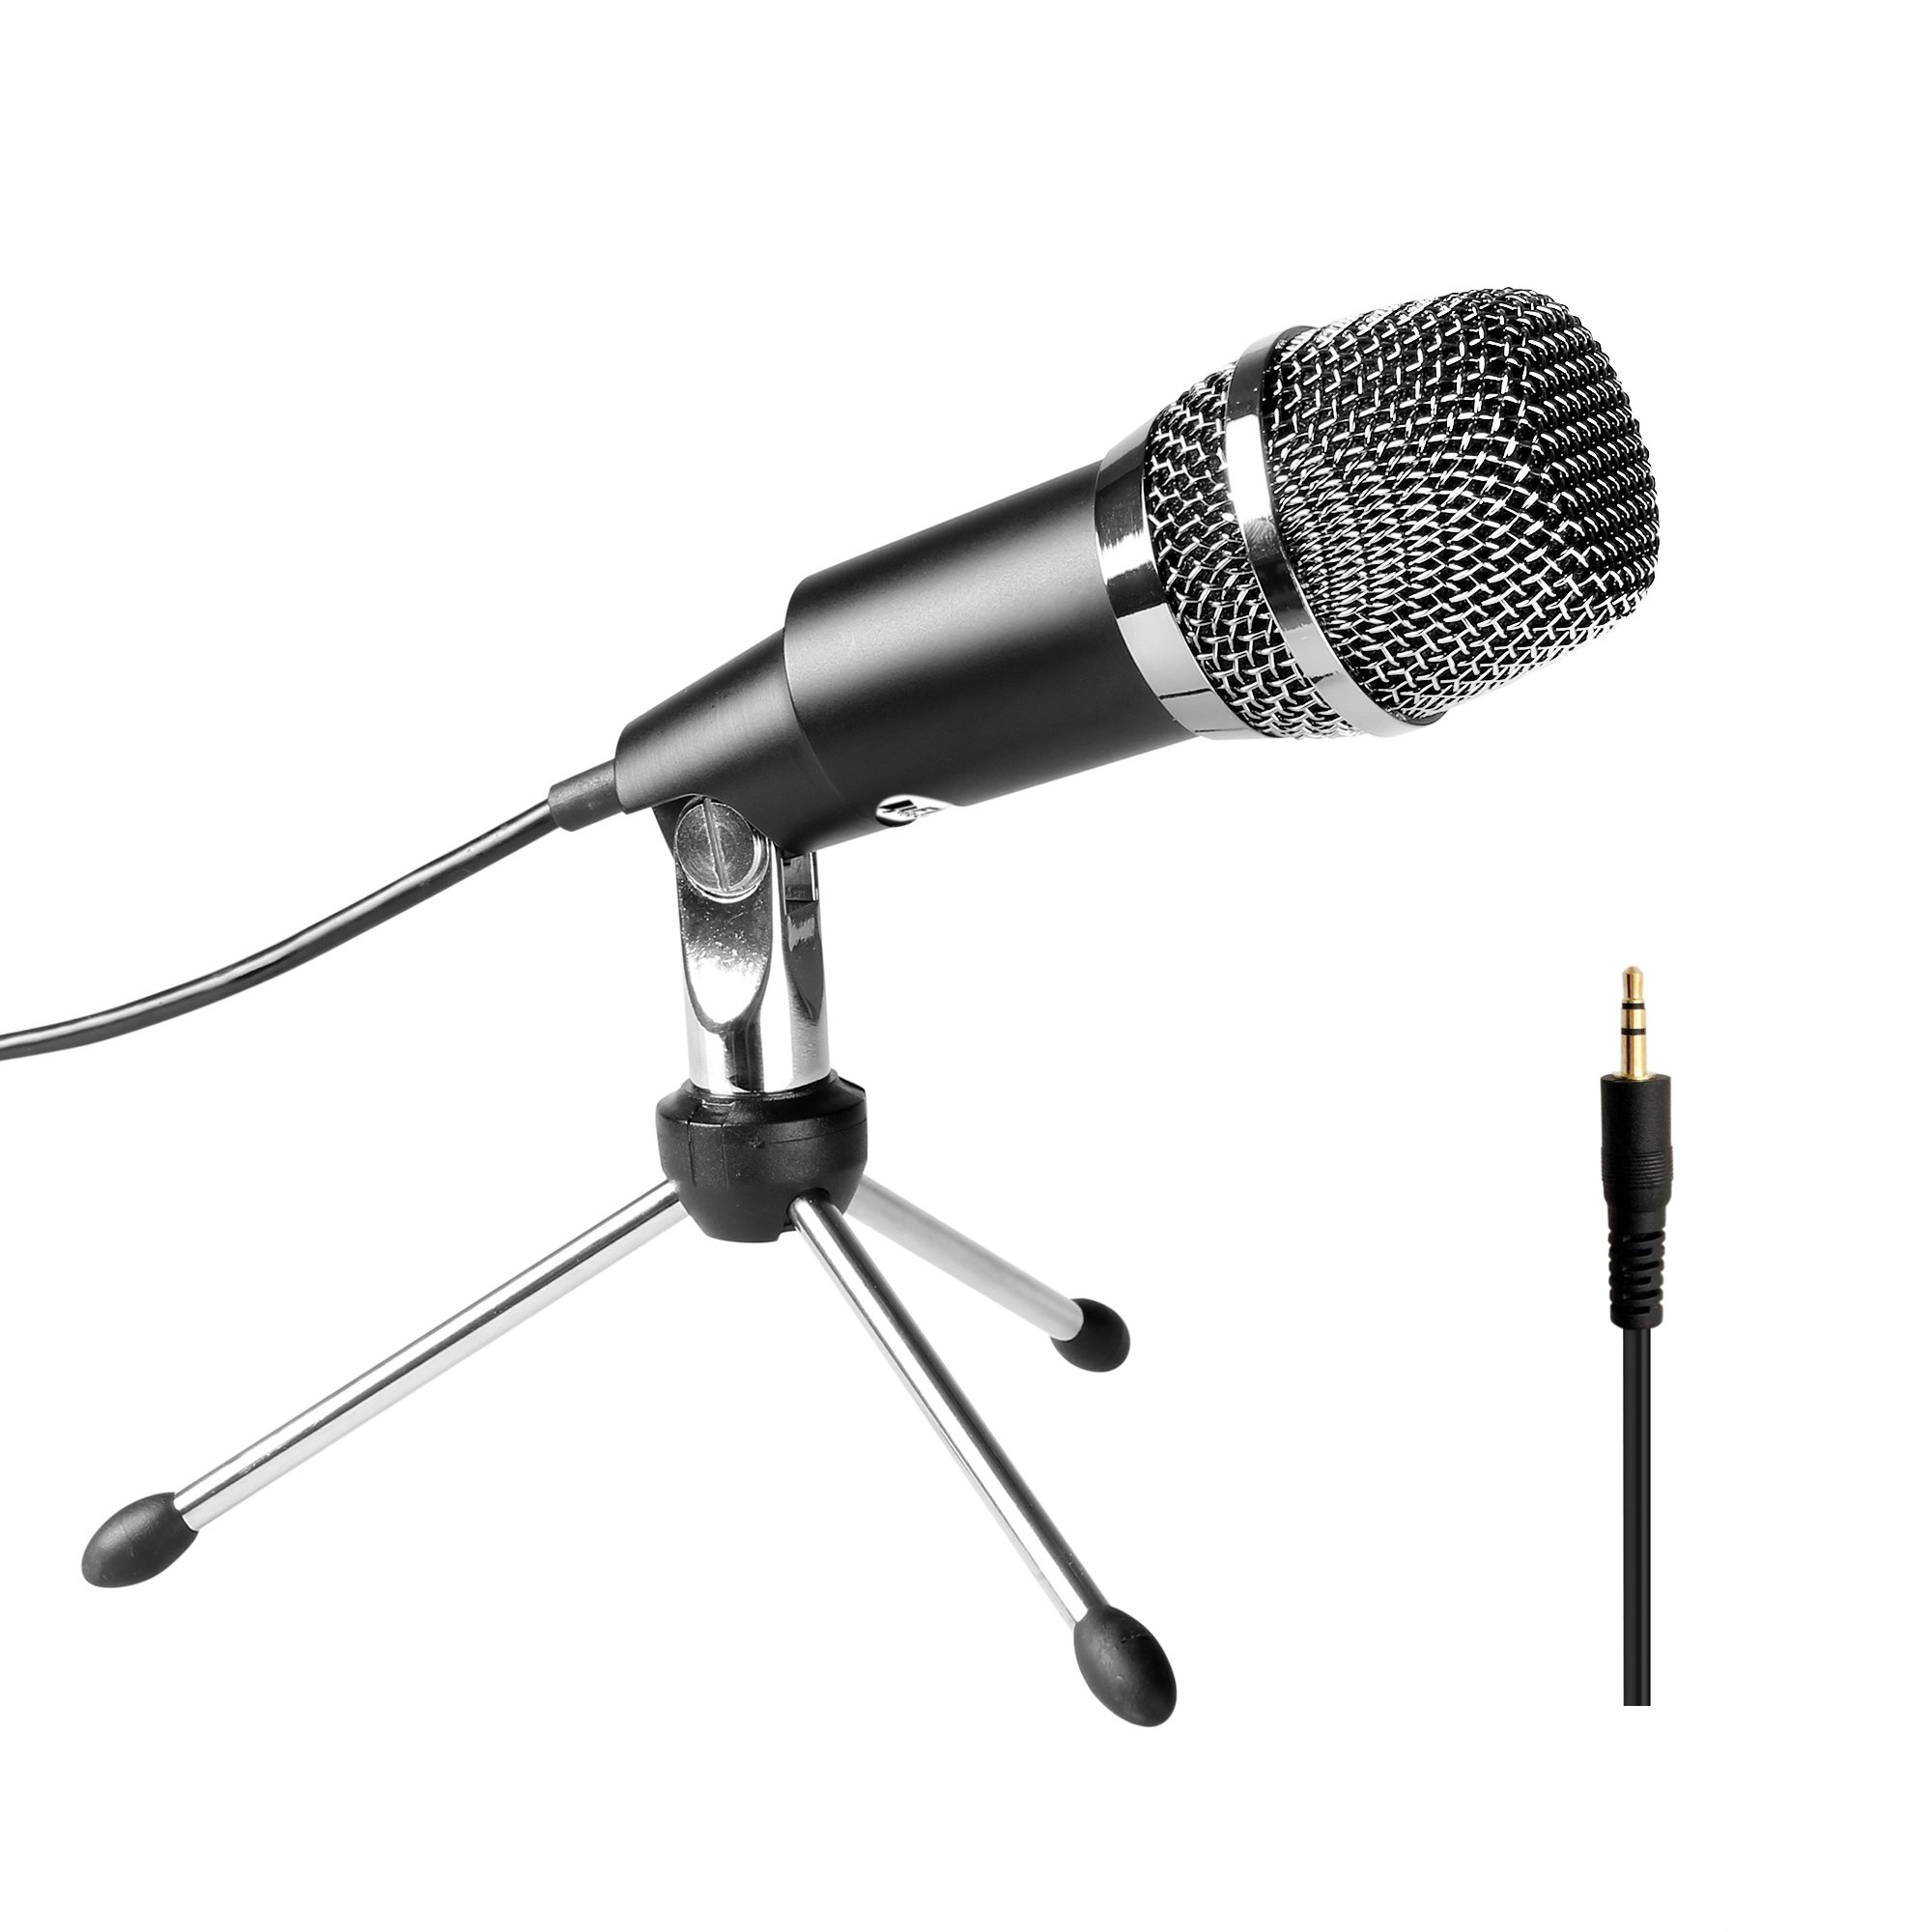 FIFINE TECHNOLOGY Microphone Condenser 3.5mm Fifine Plug and Play Microphones For Computer PC Online Chat,Omnidirectional Microphone For Skype,YouTube,Google Voice Search, Games-K667